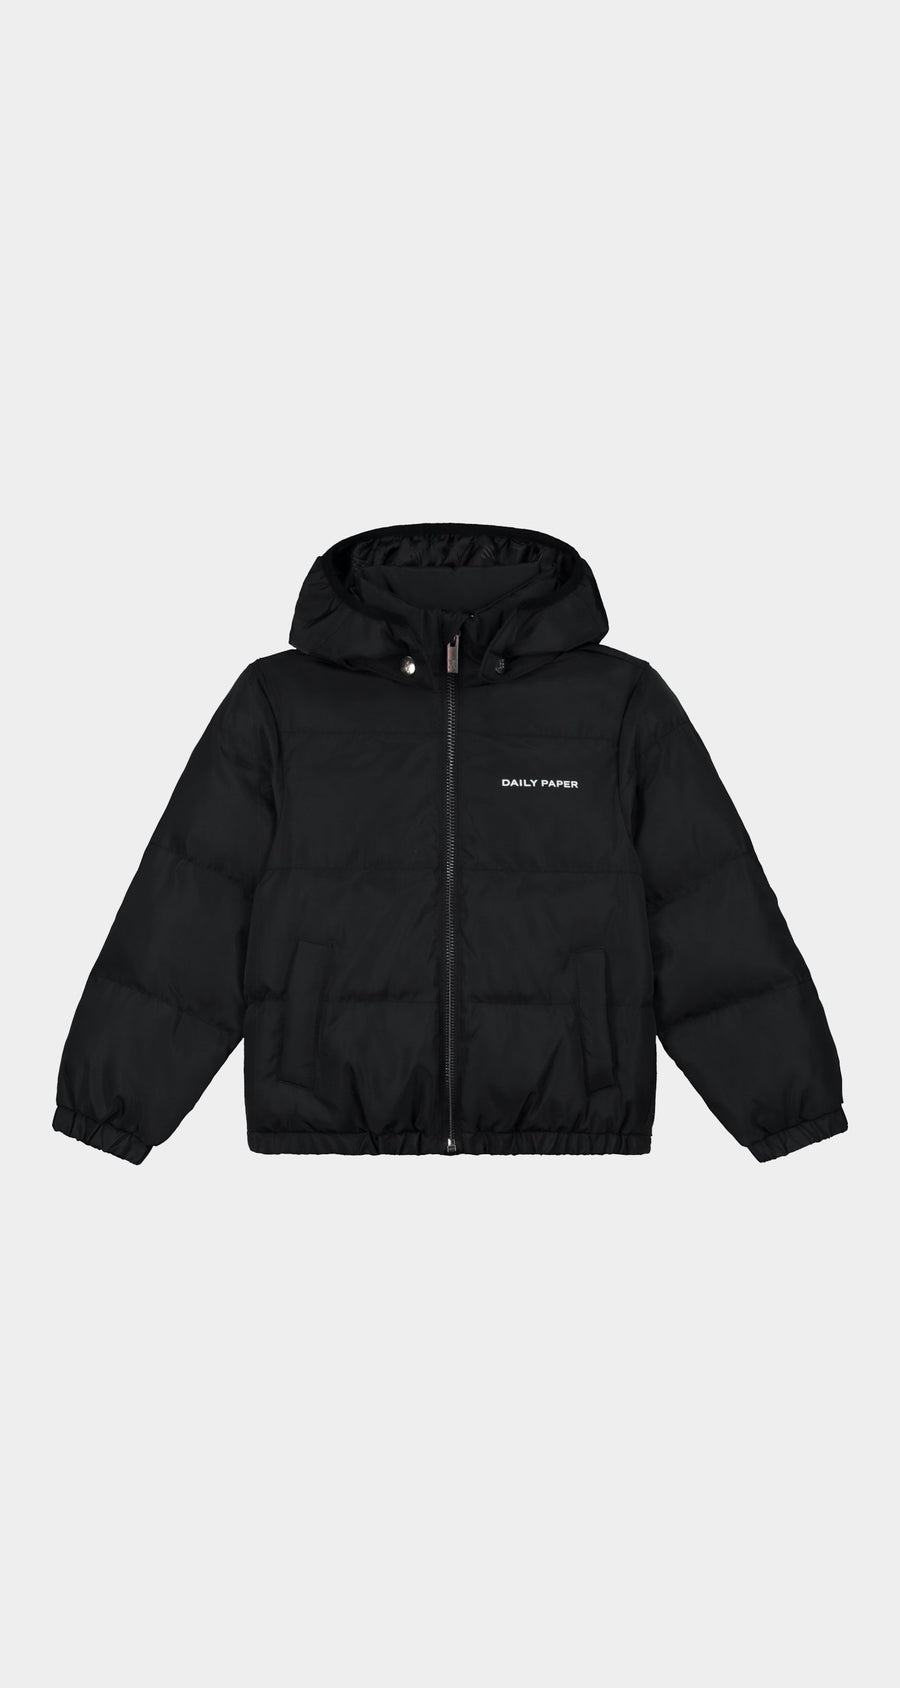 Daily Paper - Black Kids Puffer Jacket - Front